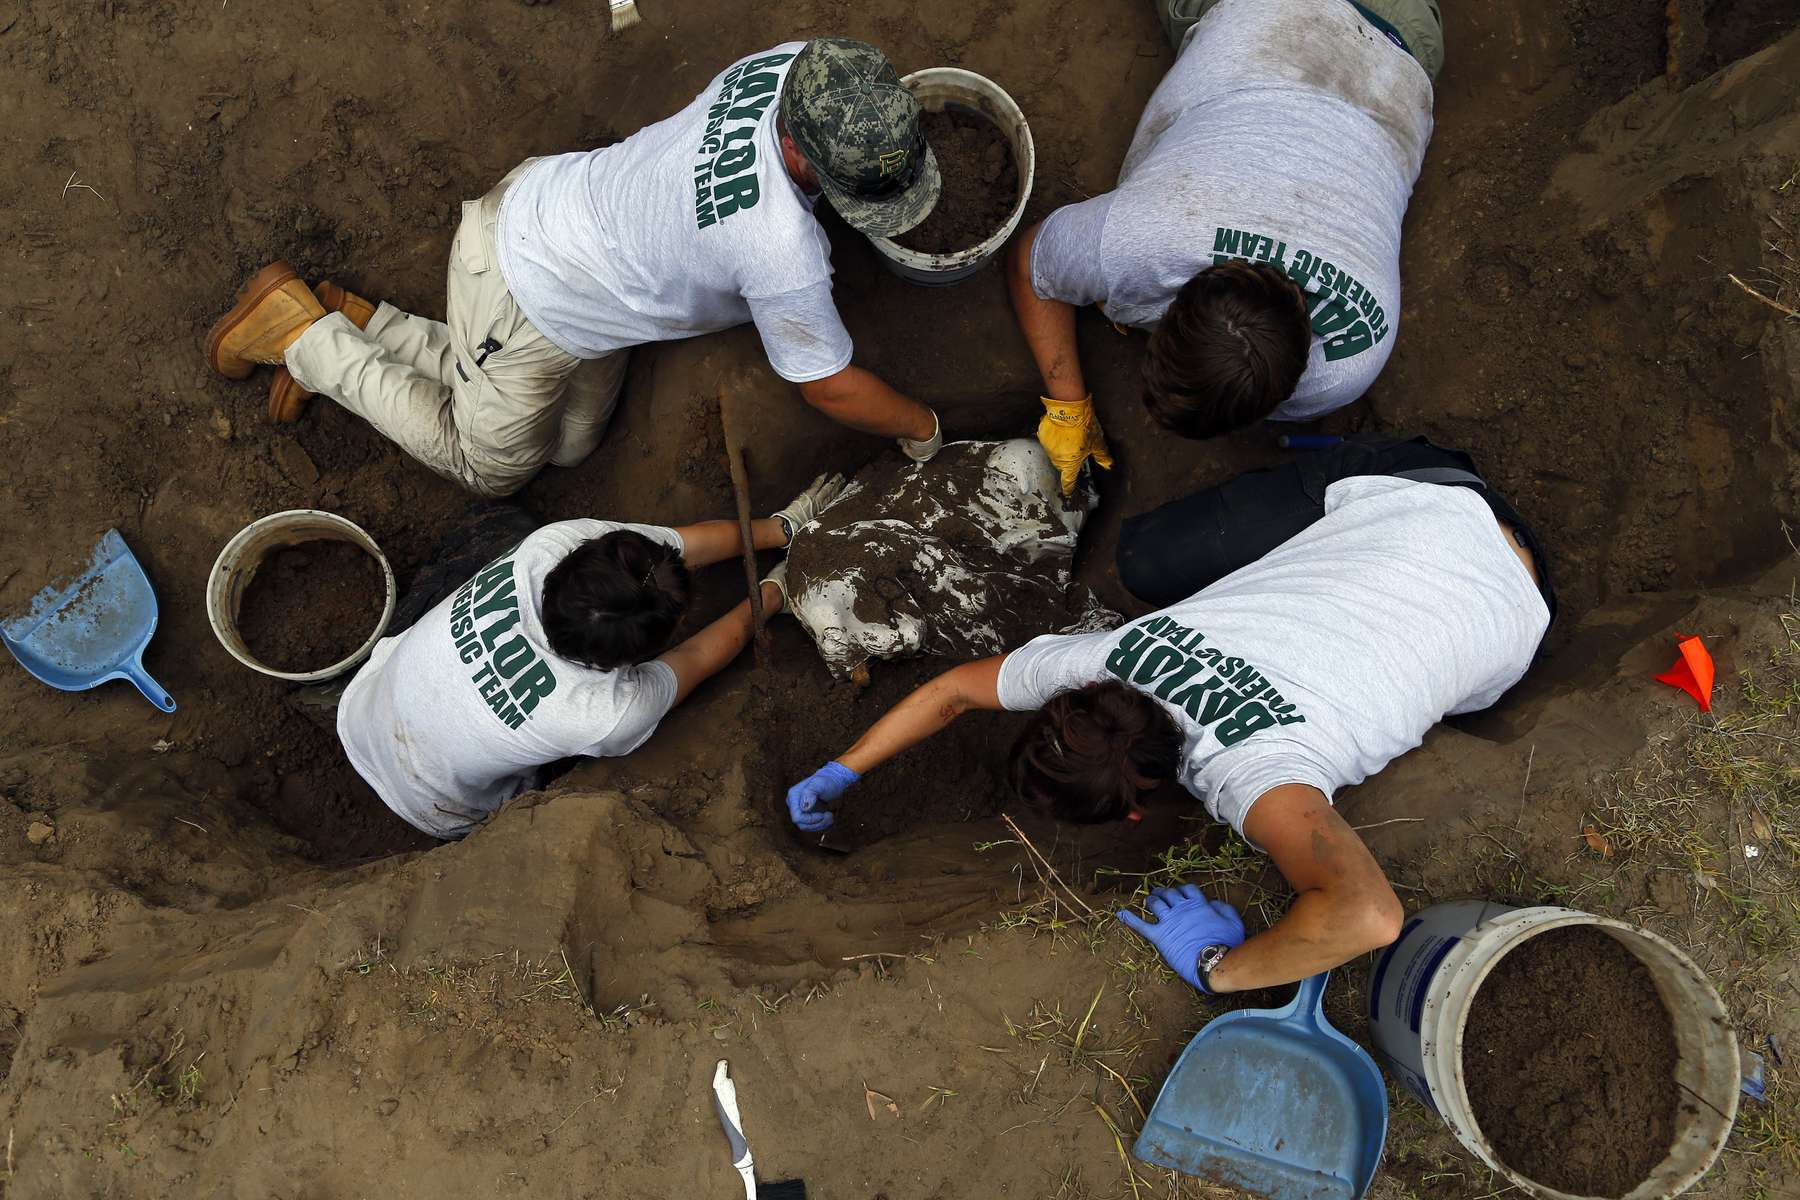 Falfurrias, Texas -  Members of the Baylor forensics team carefully remove the dirt surrounding a body as they work to exhume it in Falfurrias, Texas June 10, 2014.